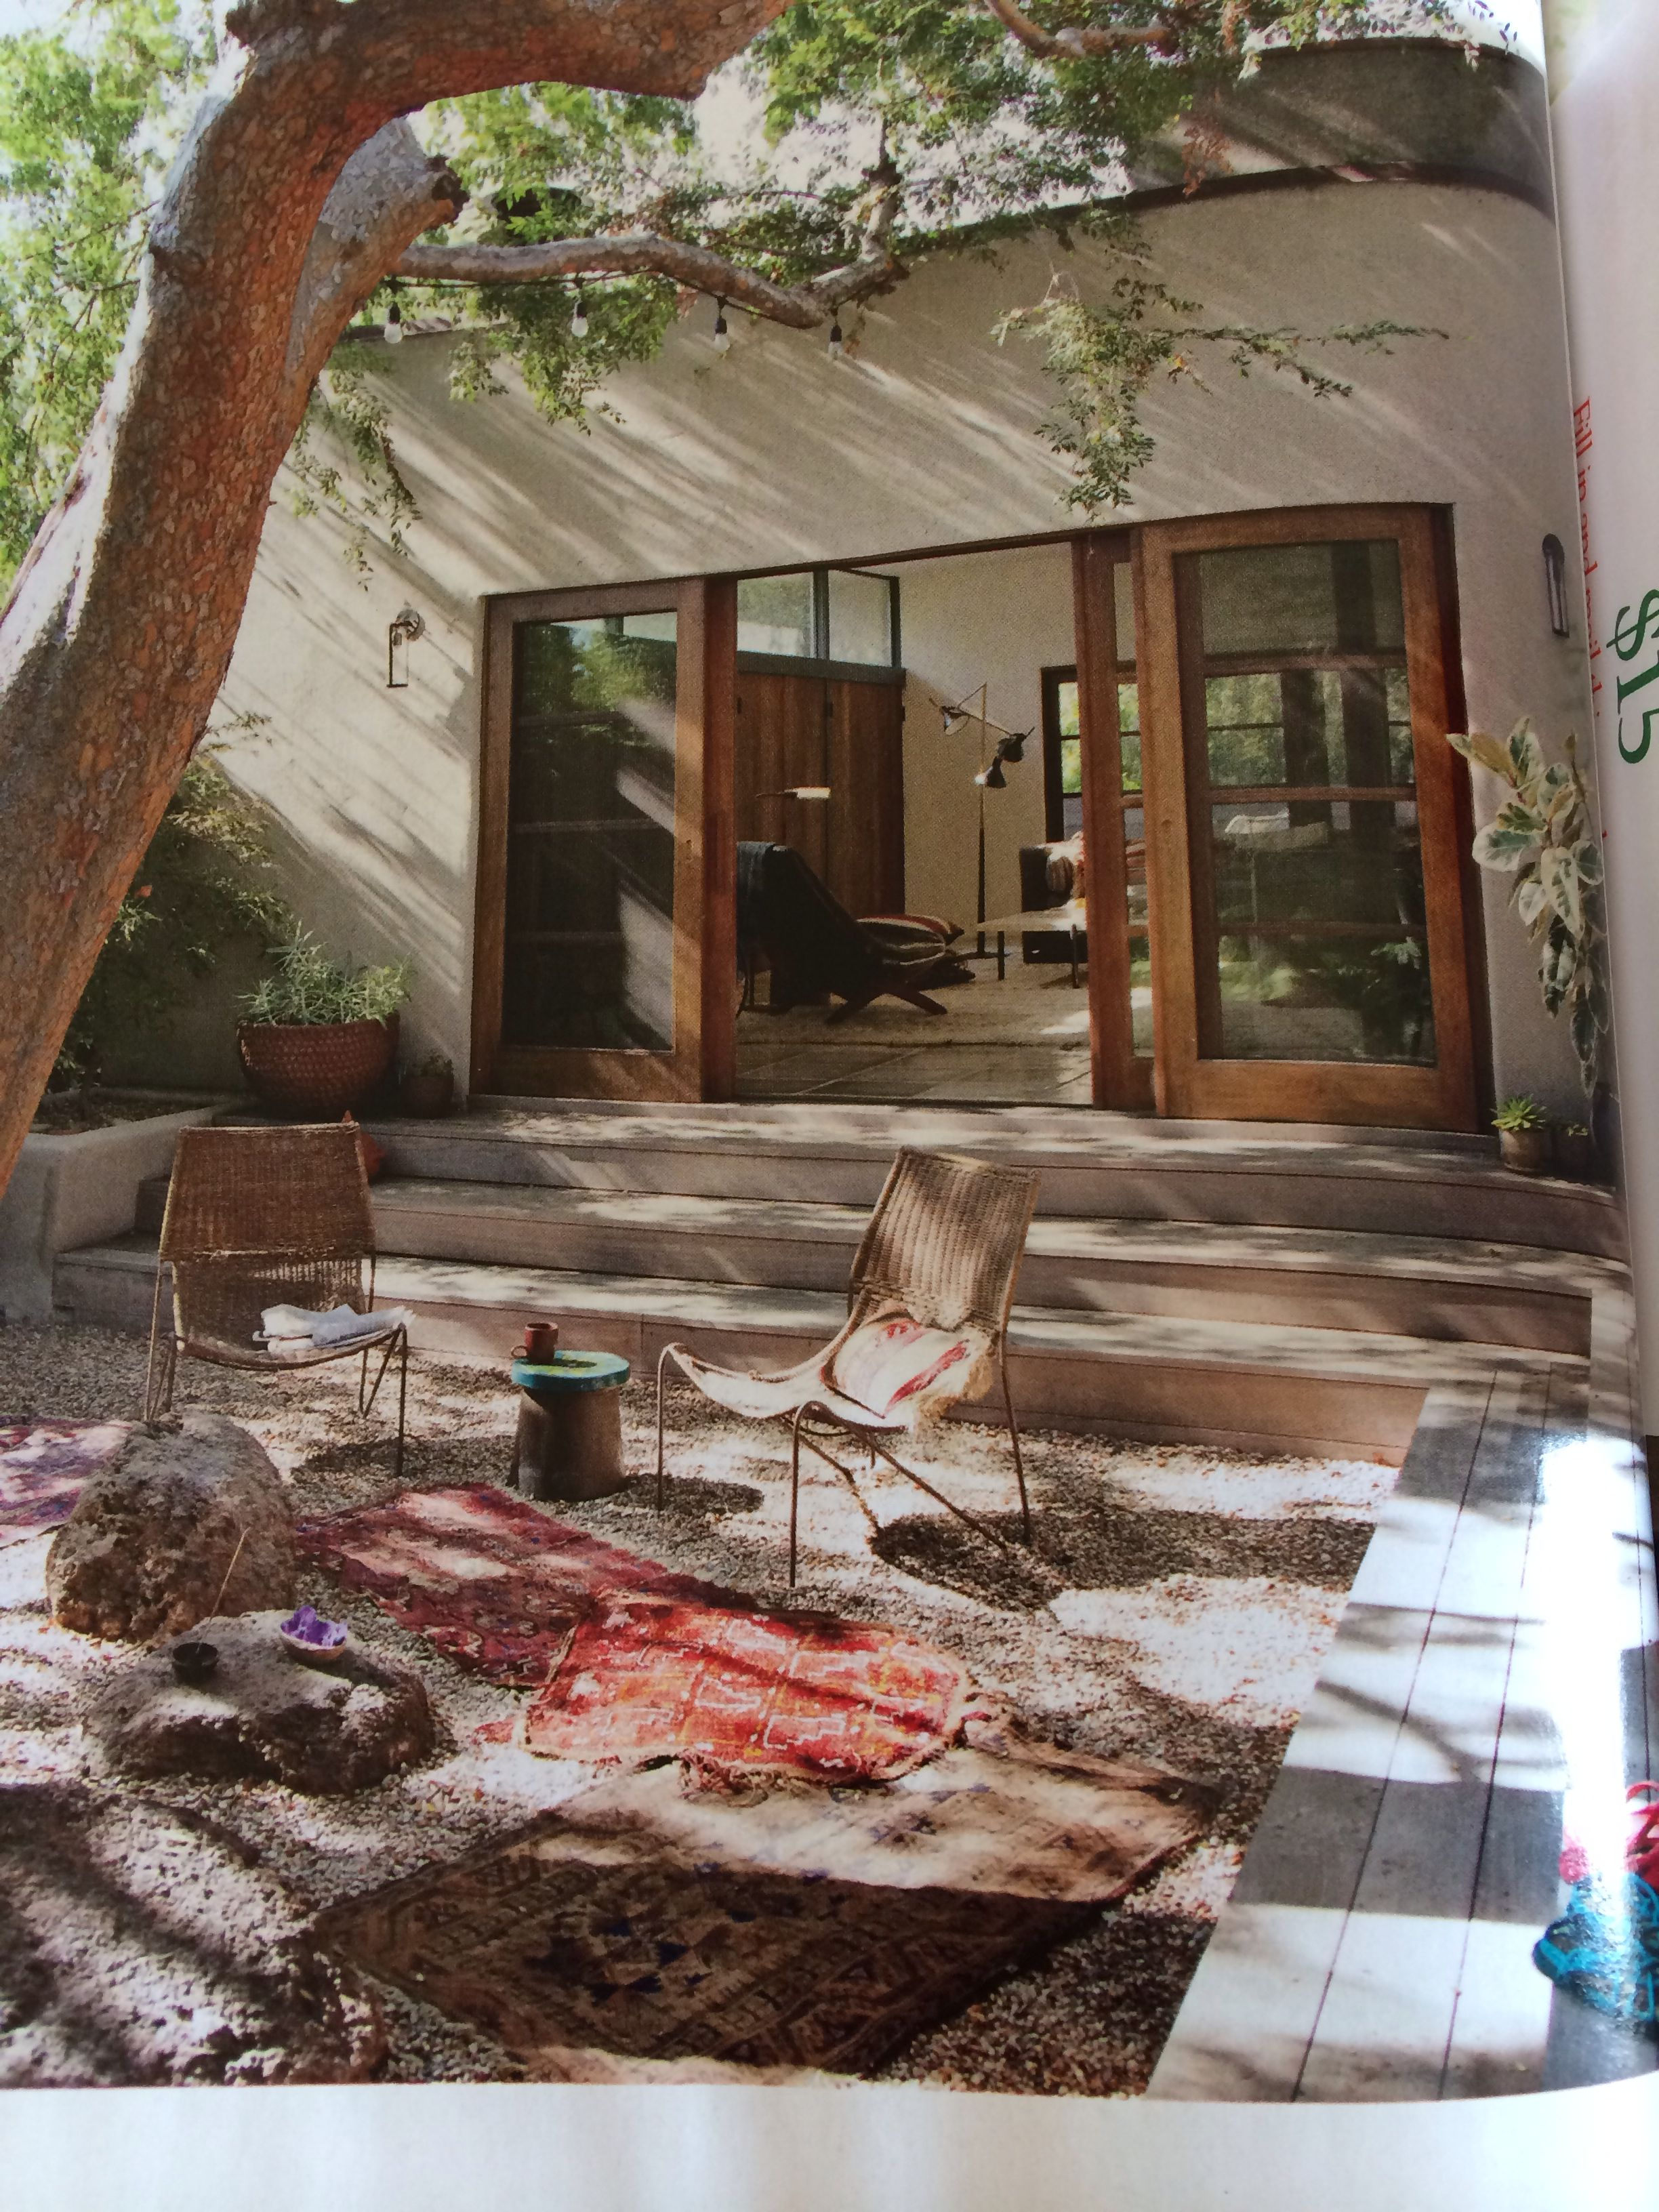 Surround Steps Seating Down To Patio With Images Landscape Design Patio Design